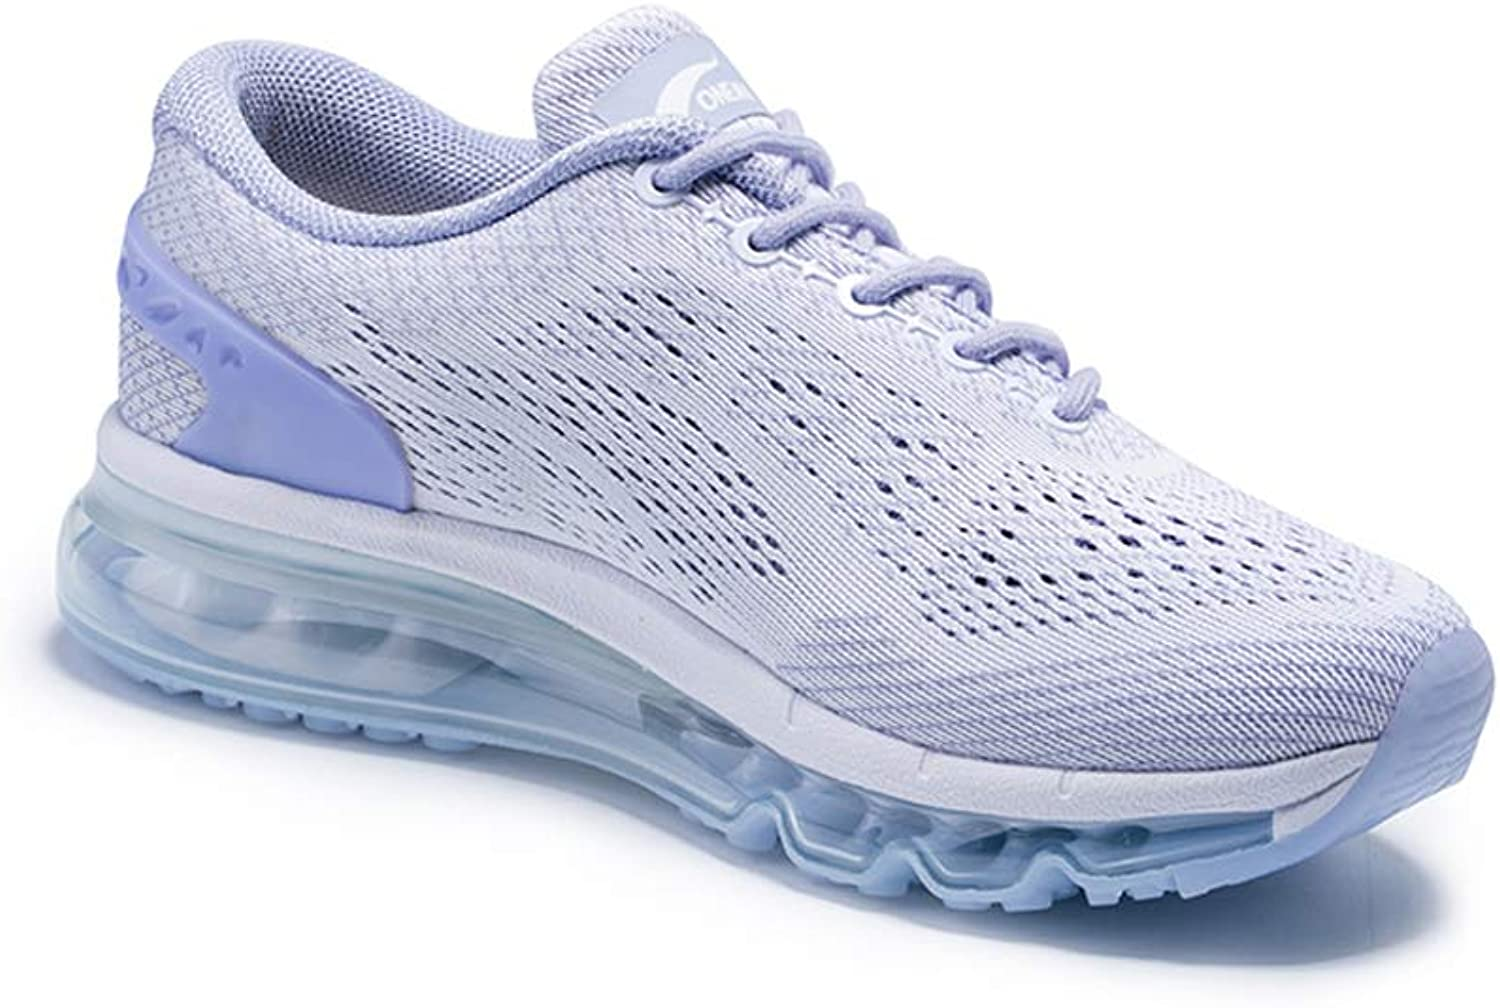 UBCA-ONEMIX Mens Lightweight Running shoes Breathable Gym Outdoor Unique Walking Sneakers